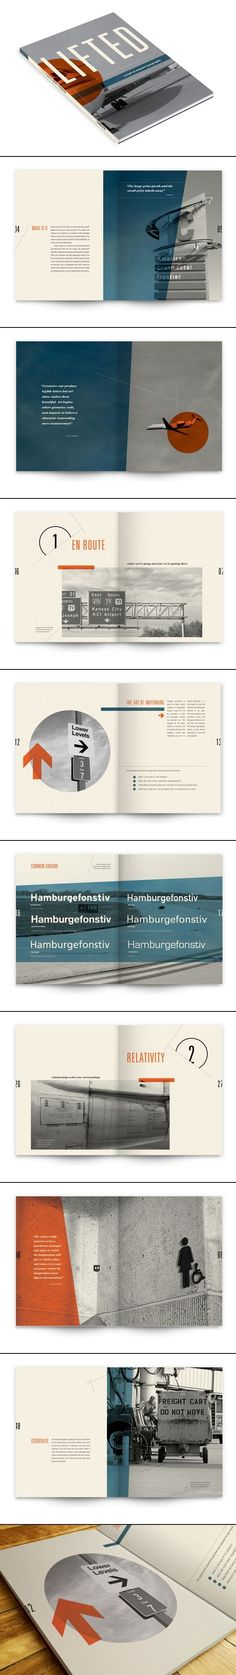 "Lifted: A Look at Airport Typography by Sally Carmichael - love the page number placement and the ""off-the-grid"" layout Web Design, Layout Design, Design Typo, Poster Design, Graphic Design Layouts, Print Layout, Tool Design, Print Design, Typography Design Layout"